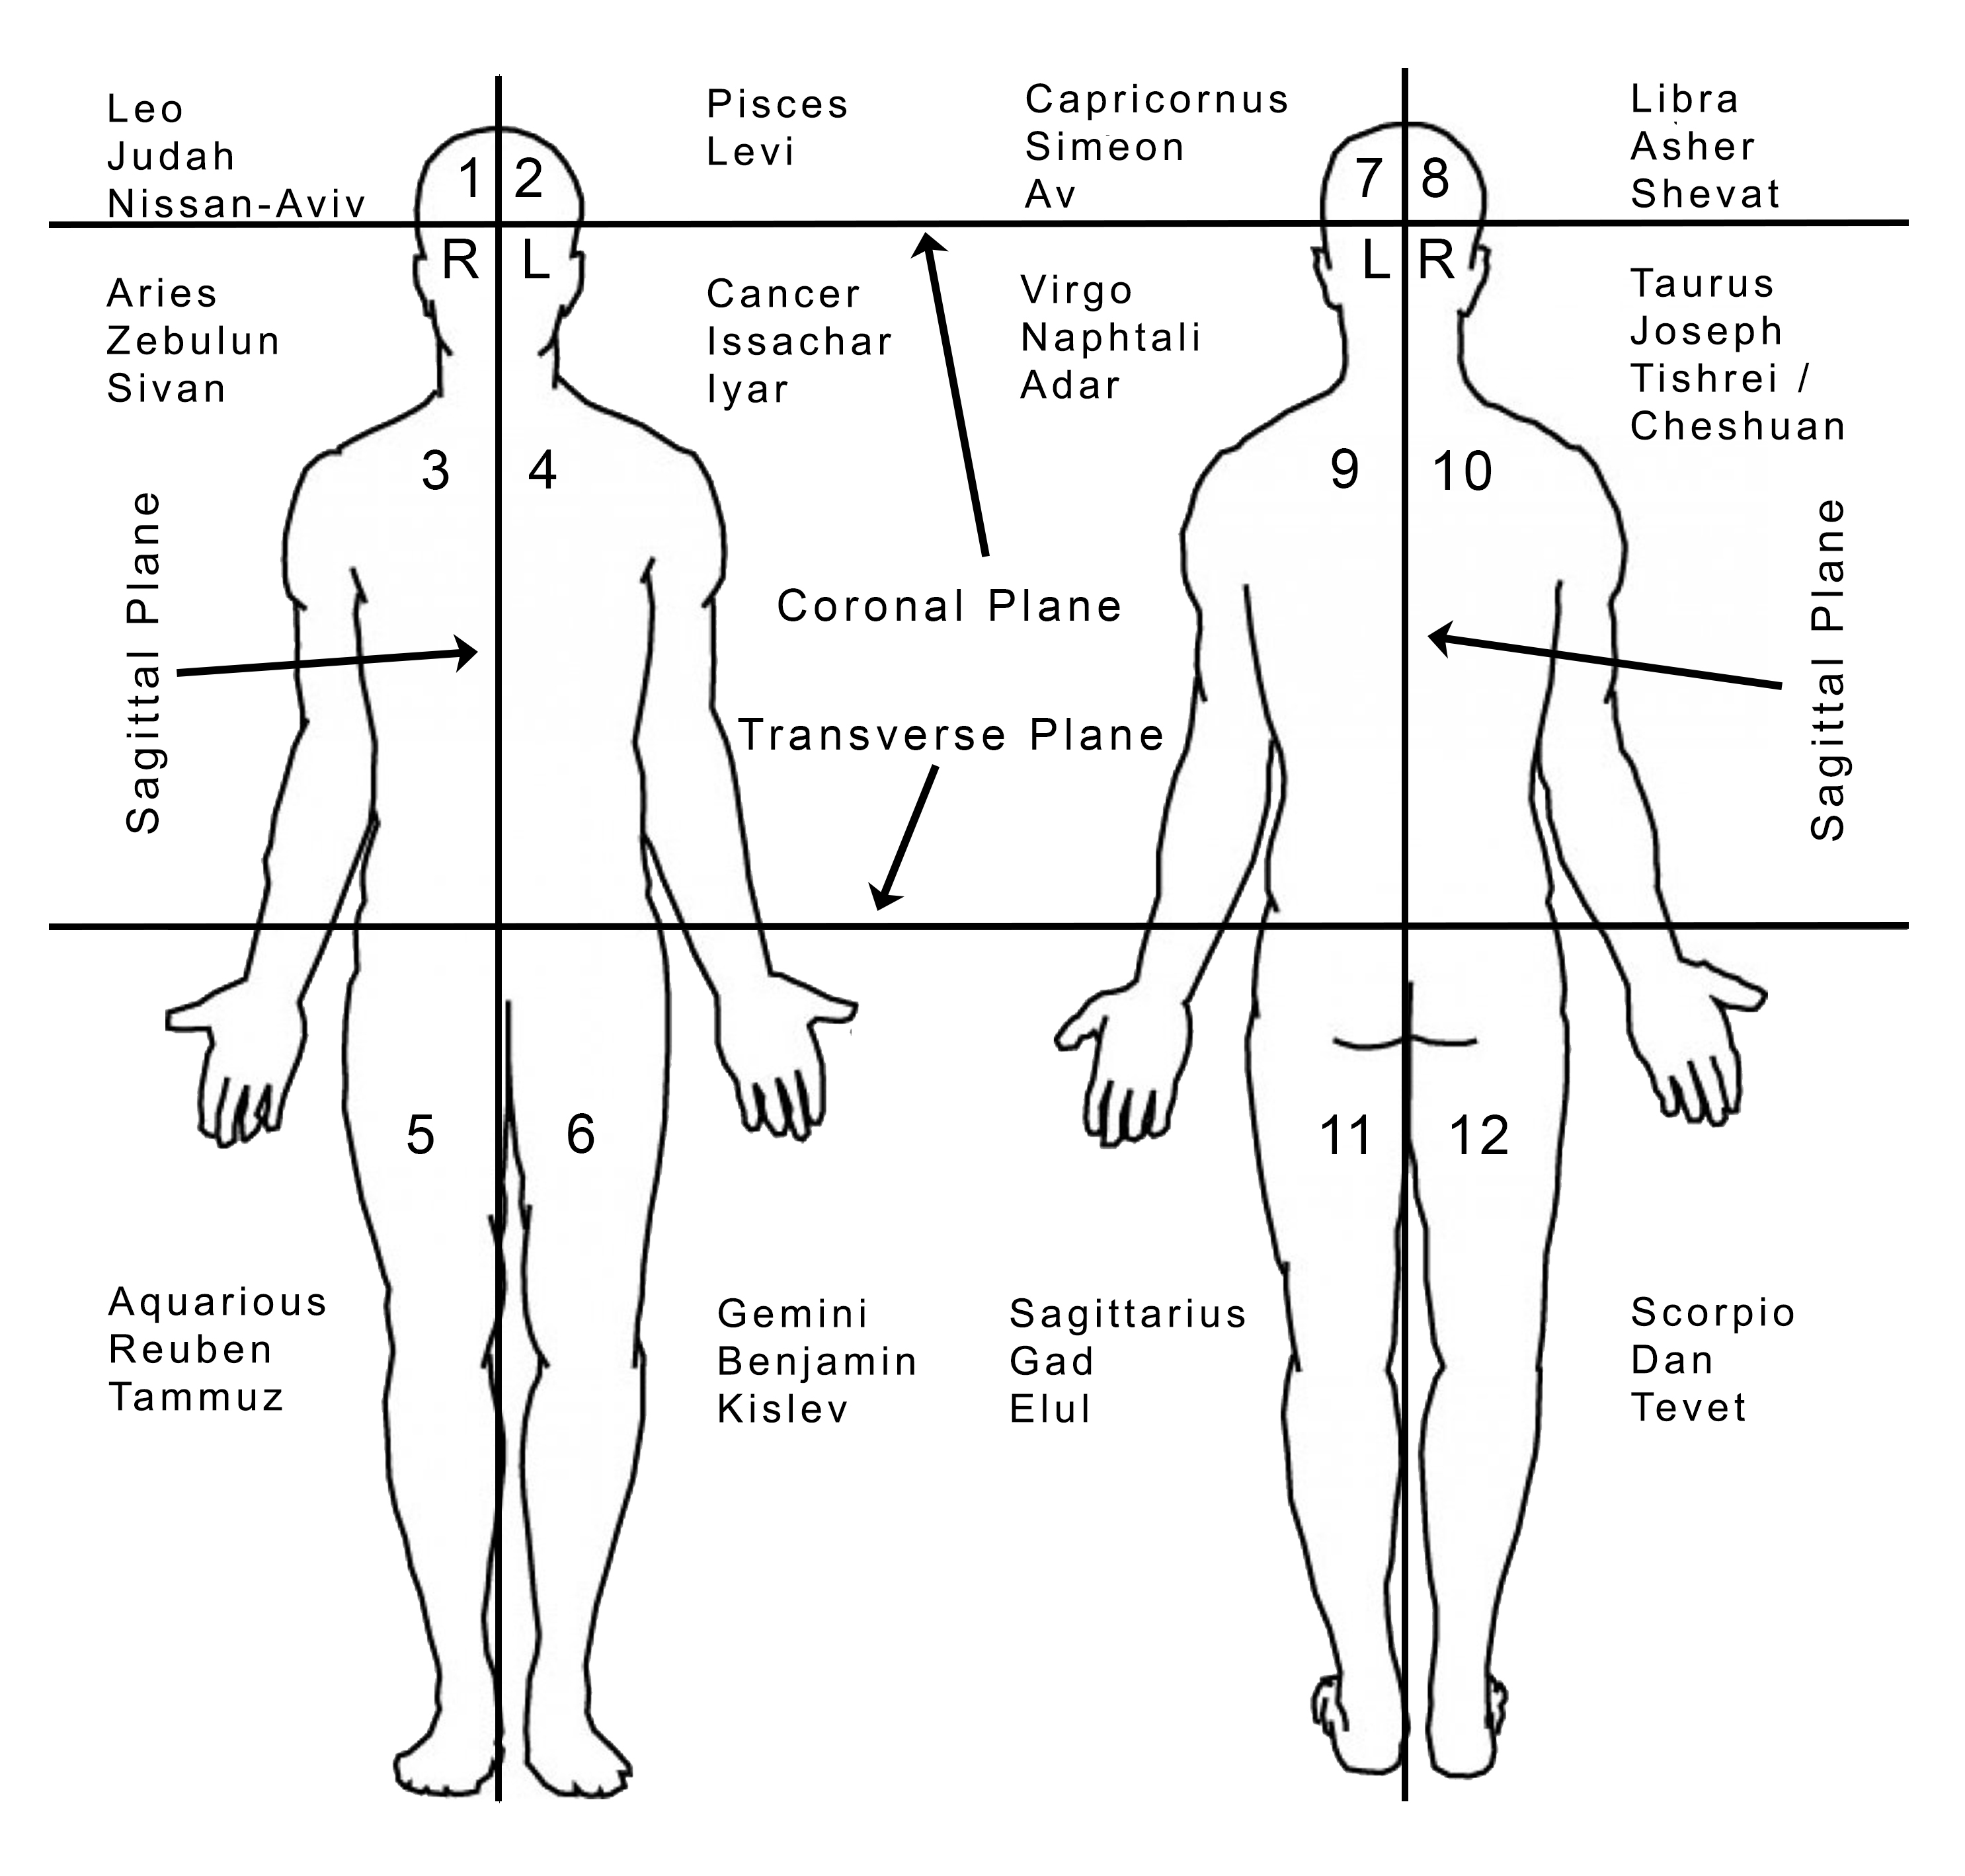 Domains of the Body - Picture